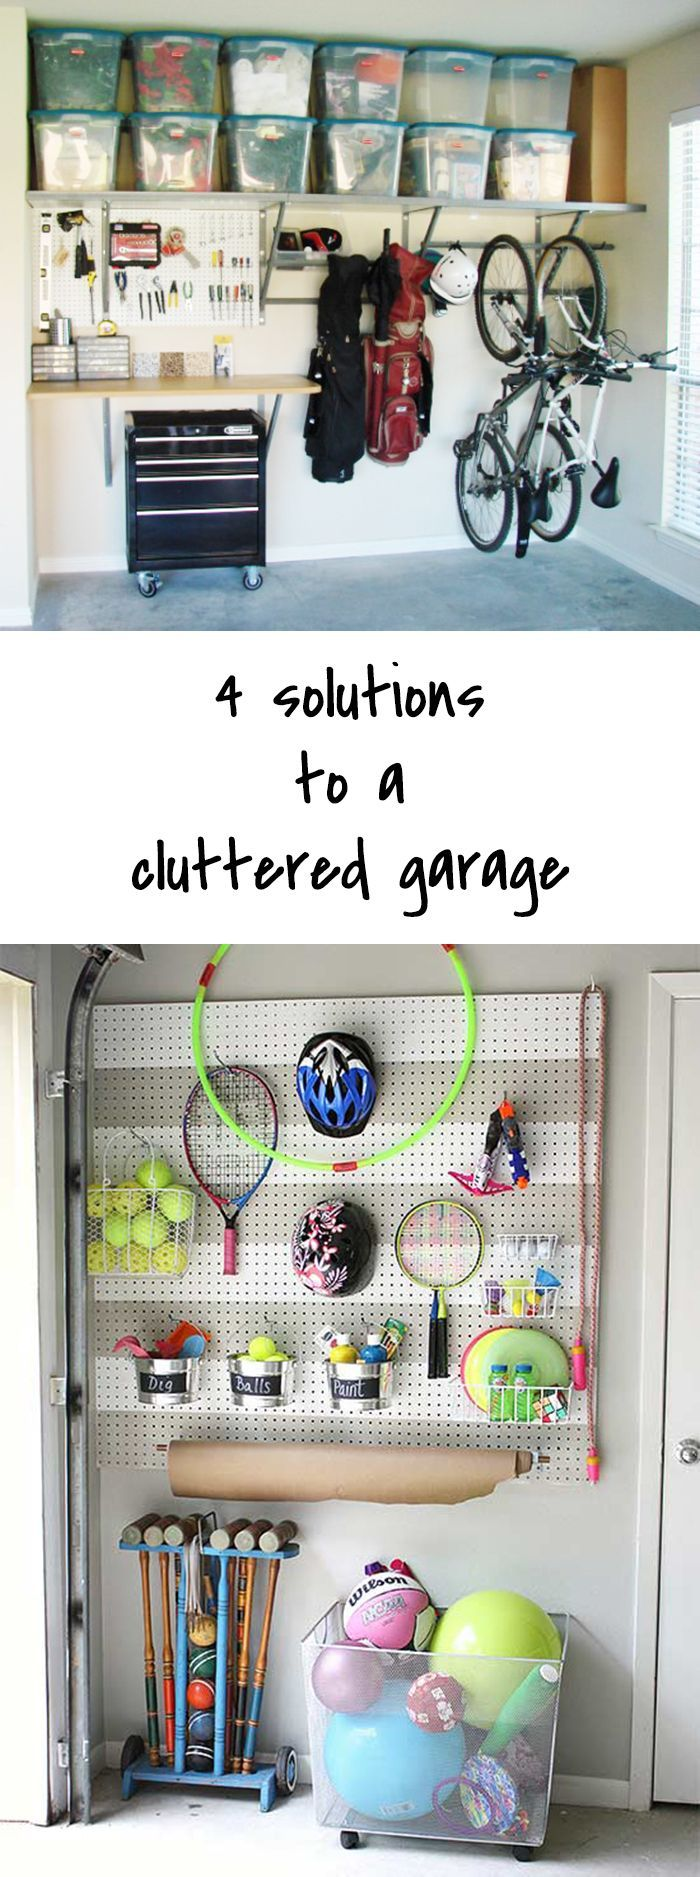 The top 4 Solutions to a cluttered garage - Ohoh deco#cluttered #deco #garage #ohoh #solutions #top